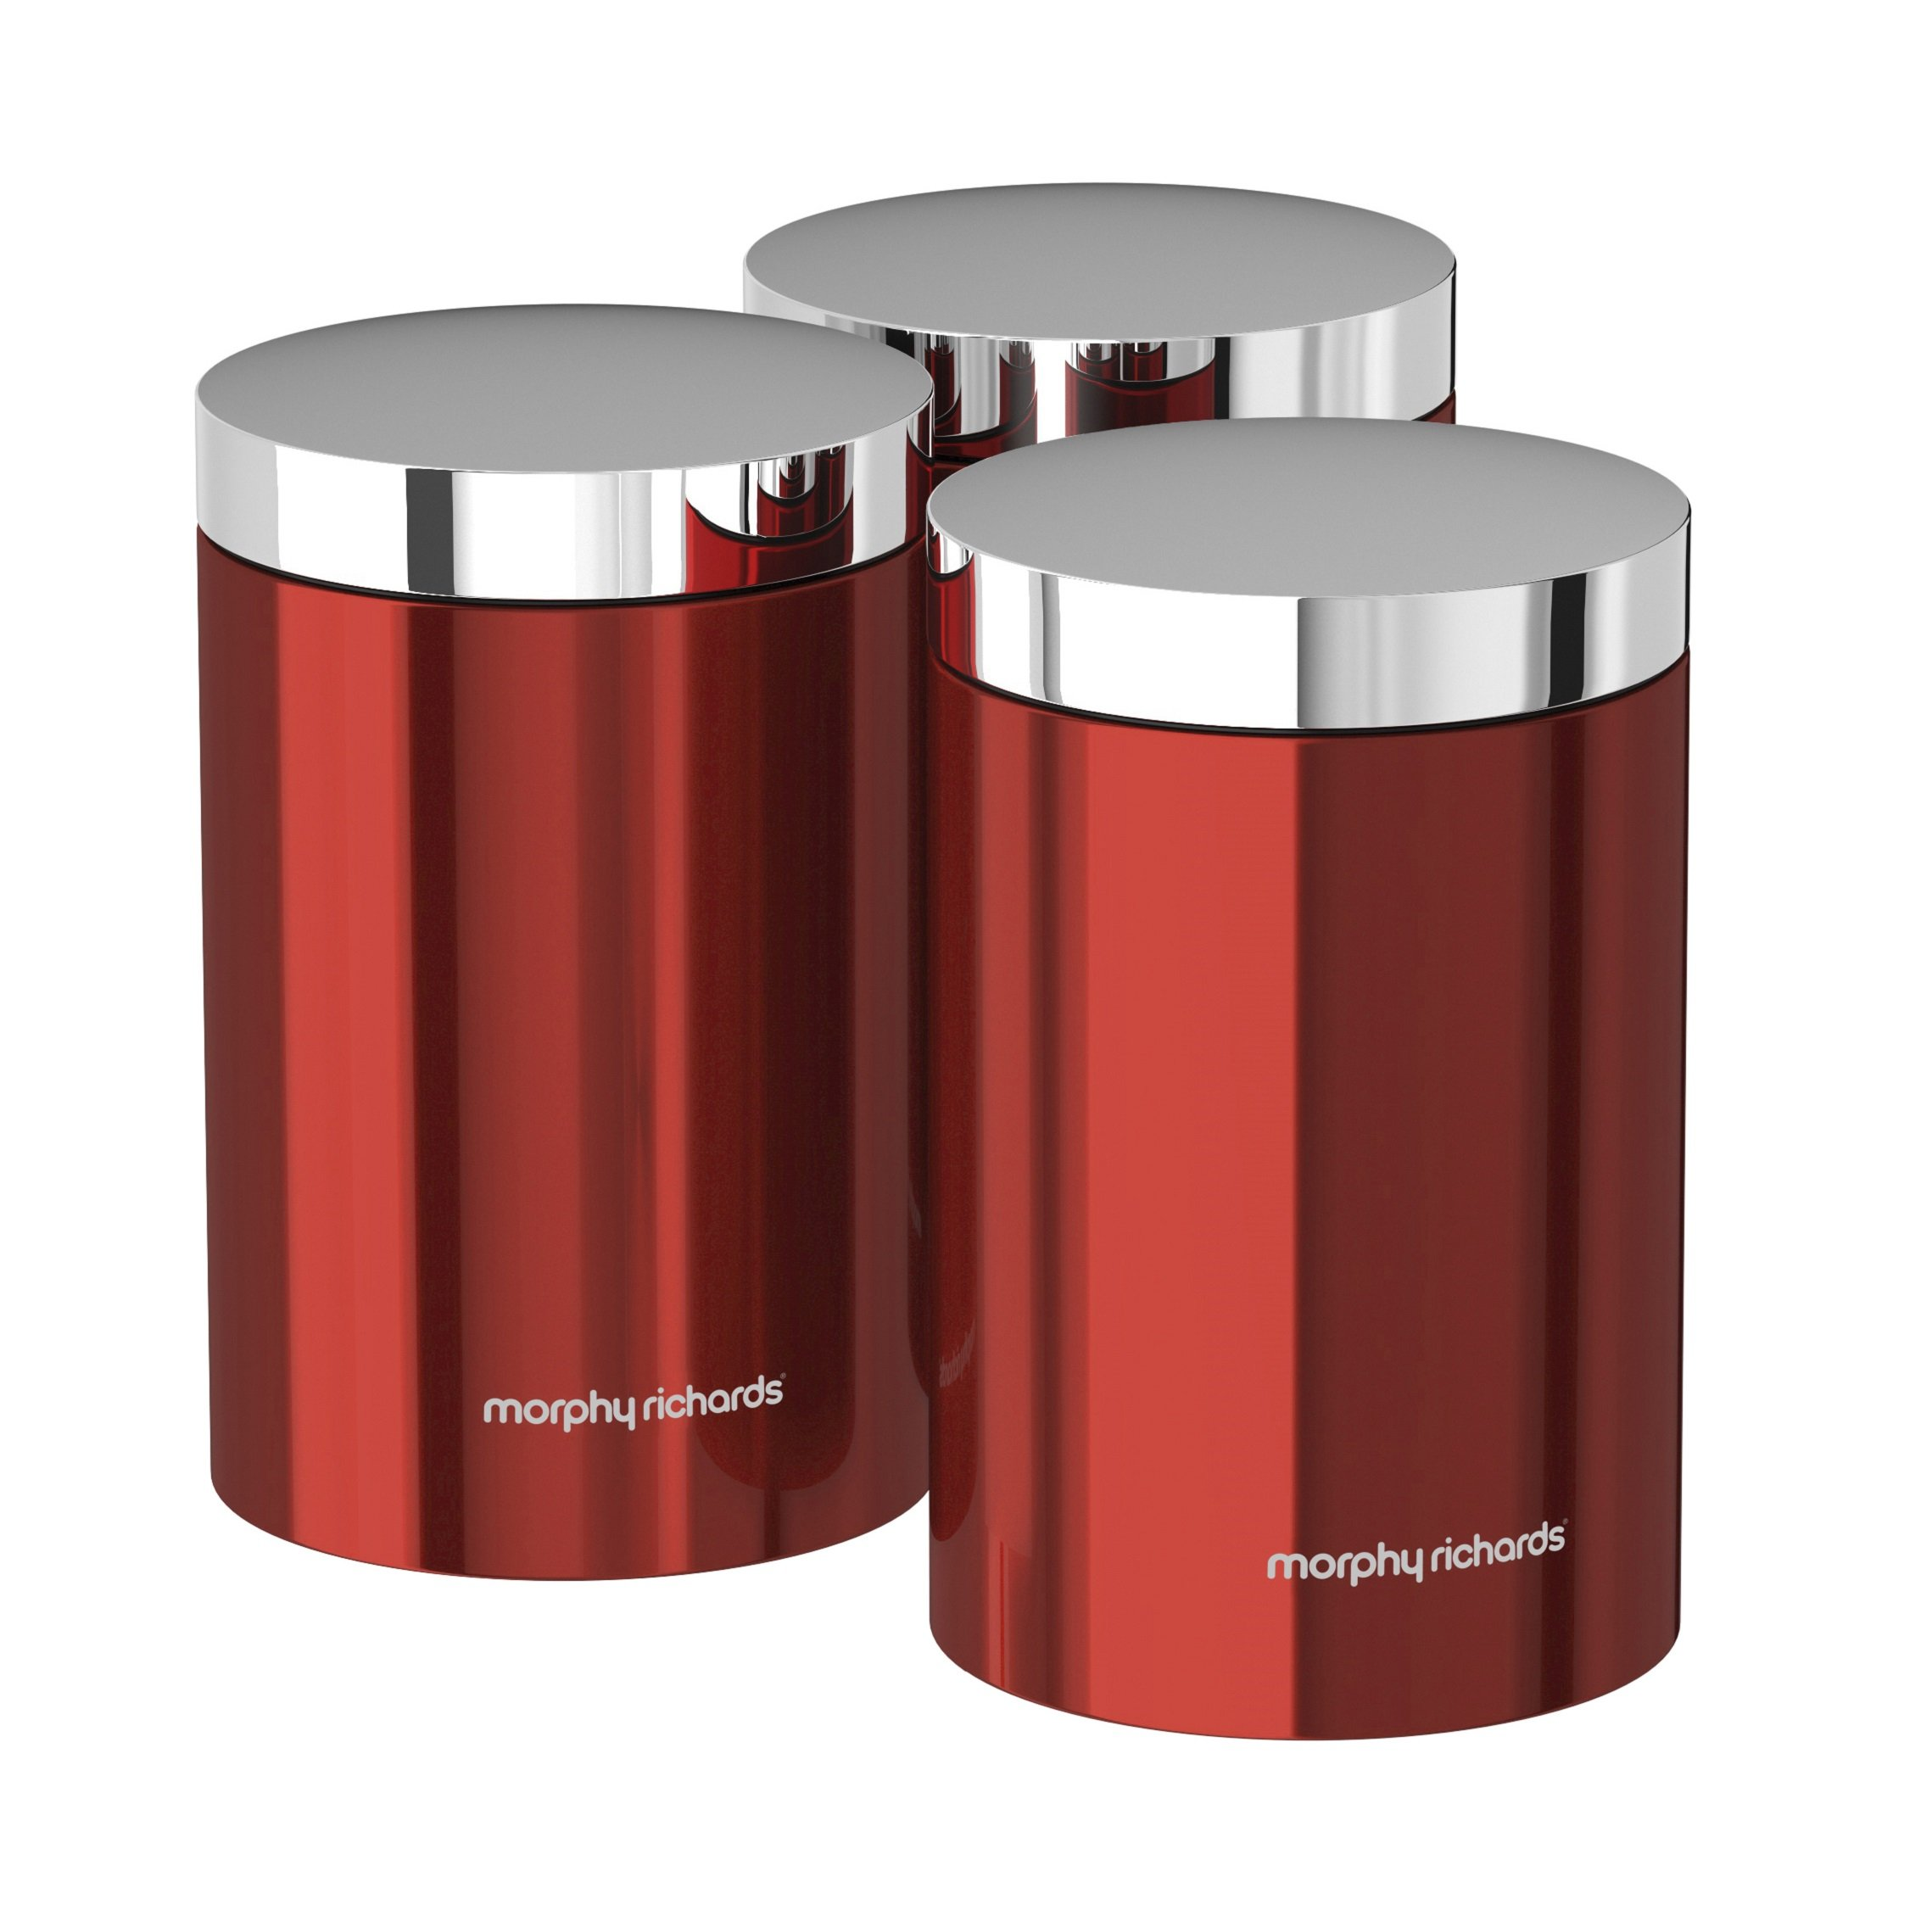 Morphy Richards Kitchen Set: Morphy Richards Set Of 3 Storage Canisters